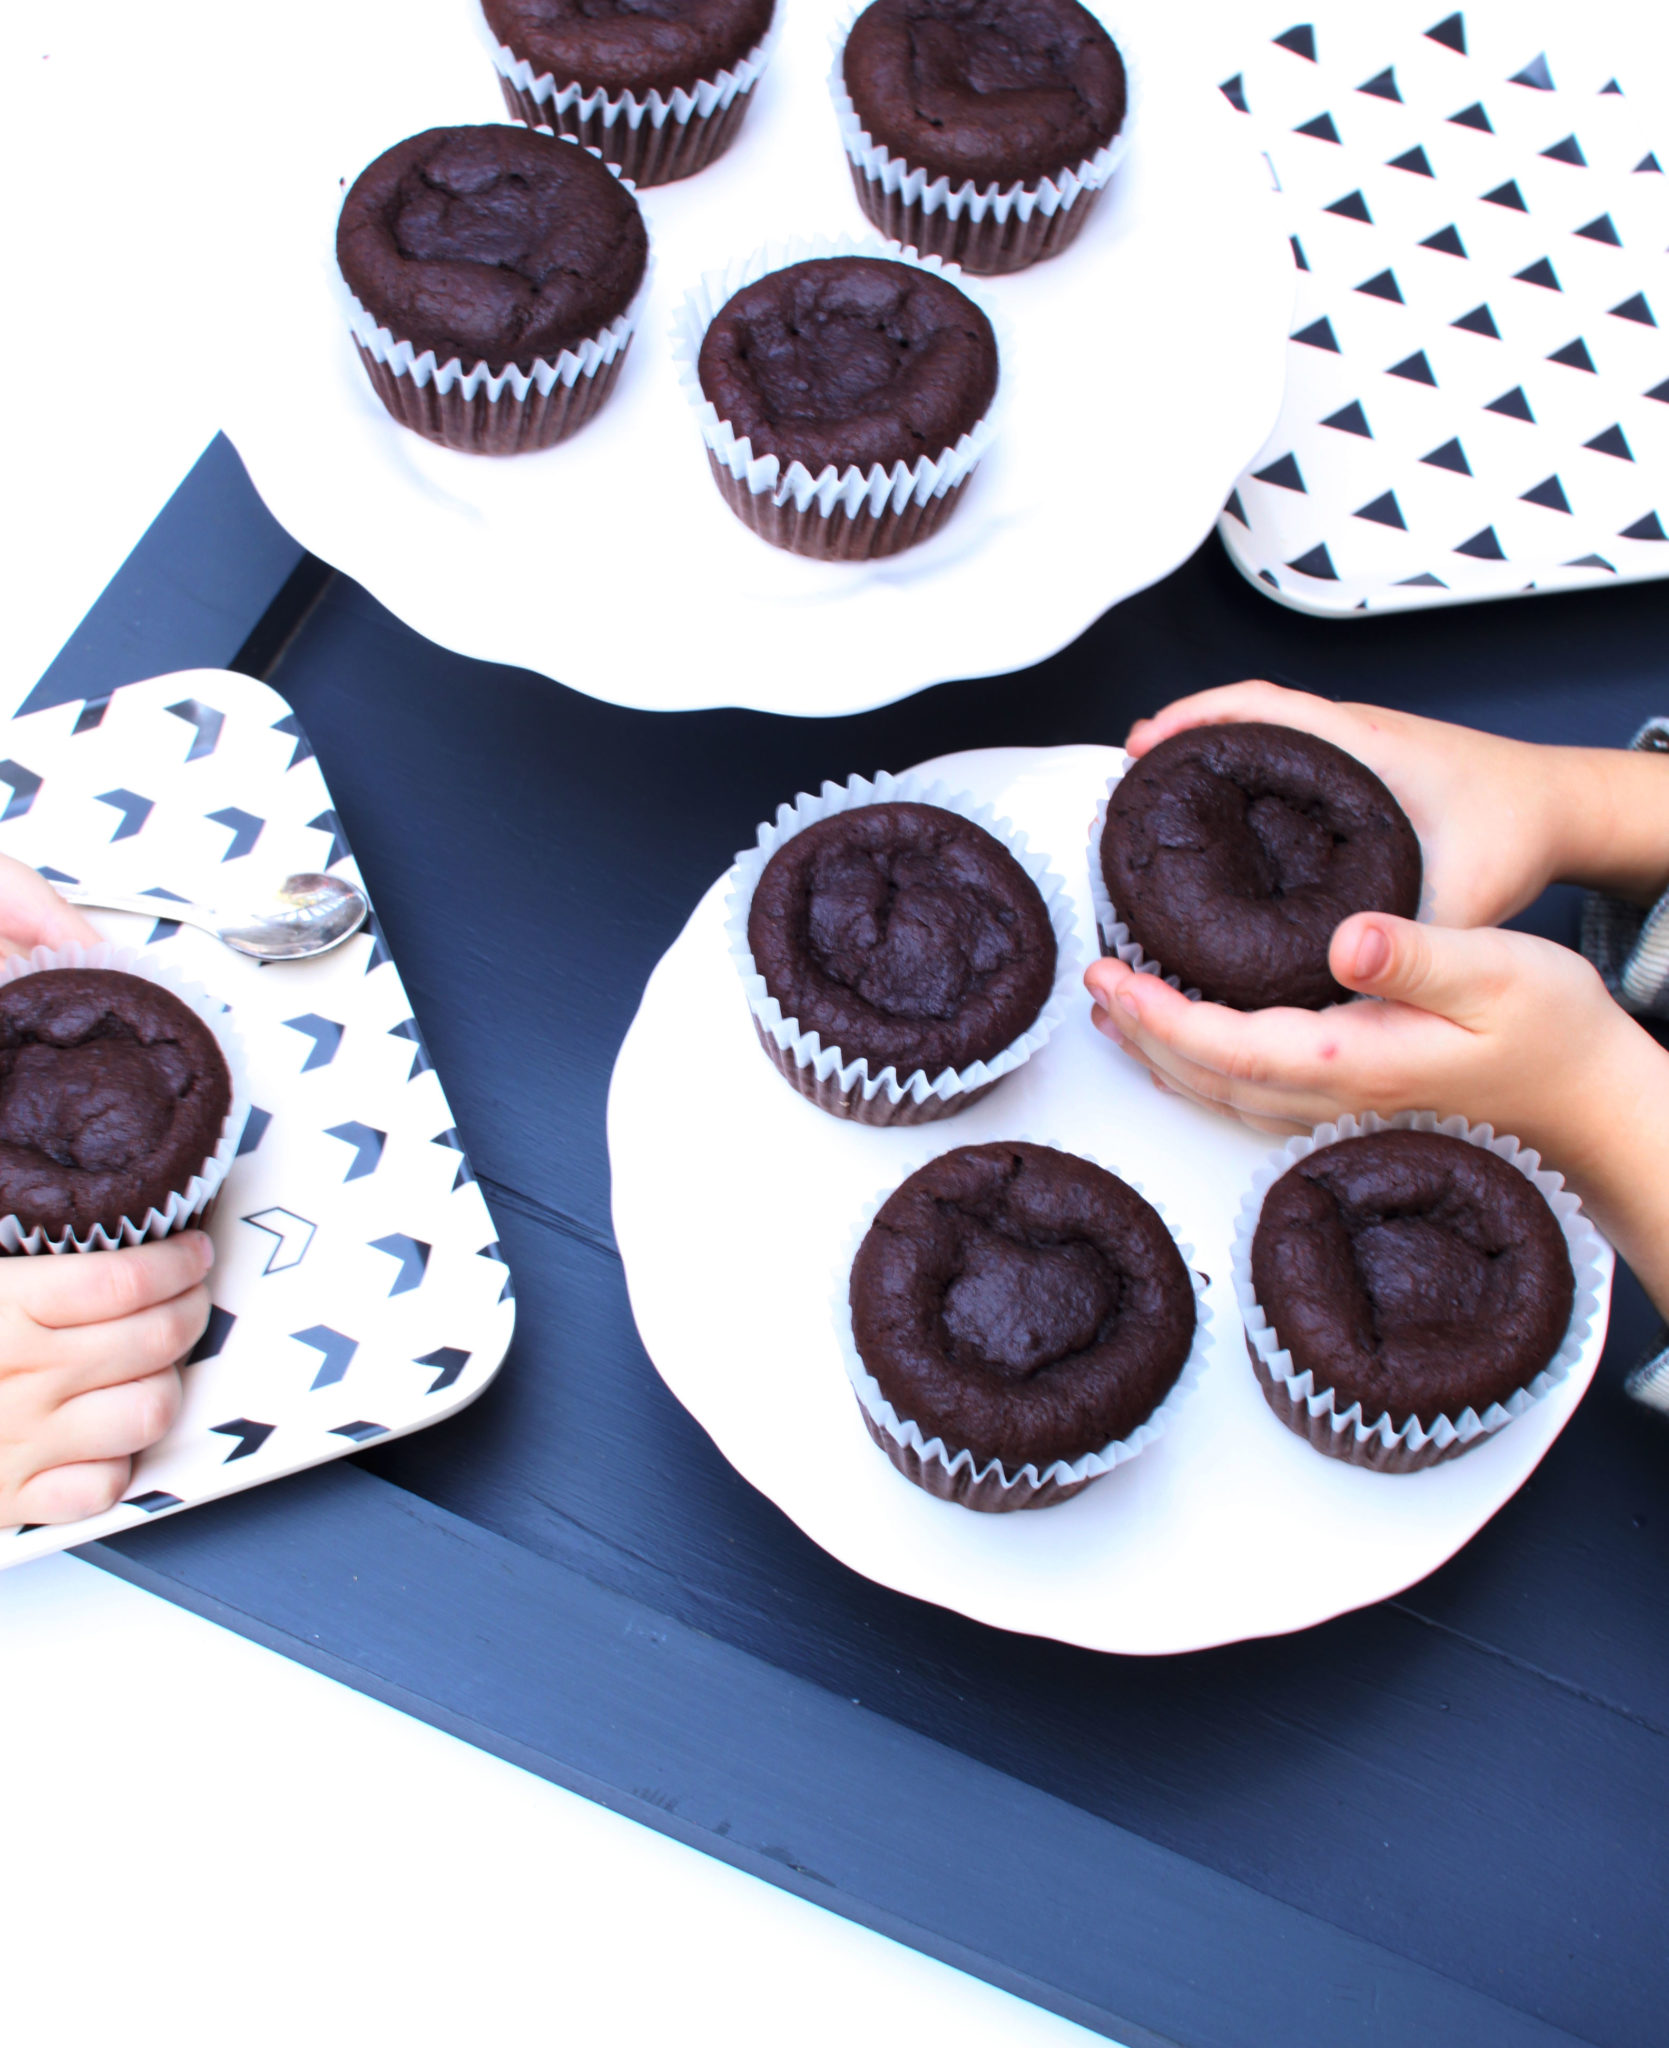 Sneaky Chocolate Cupcakes with Chocolate Avocado Icing